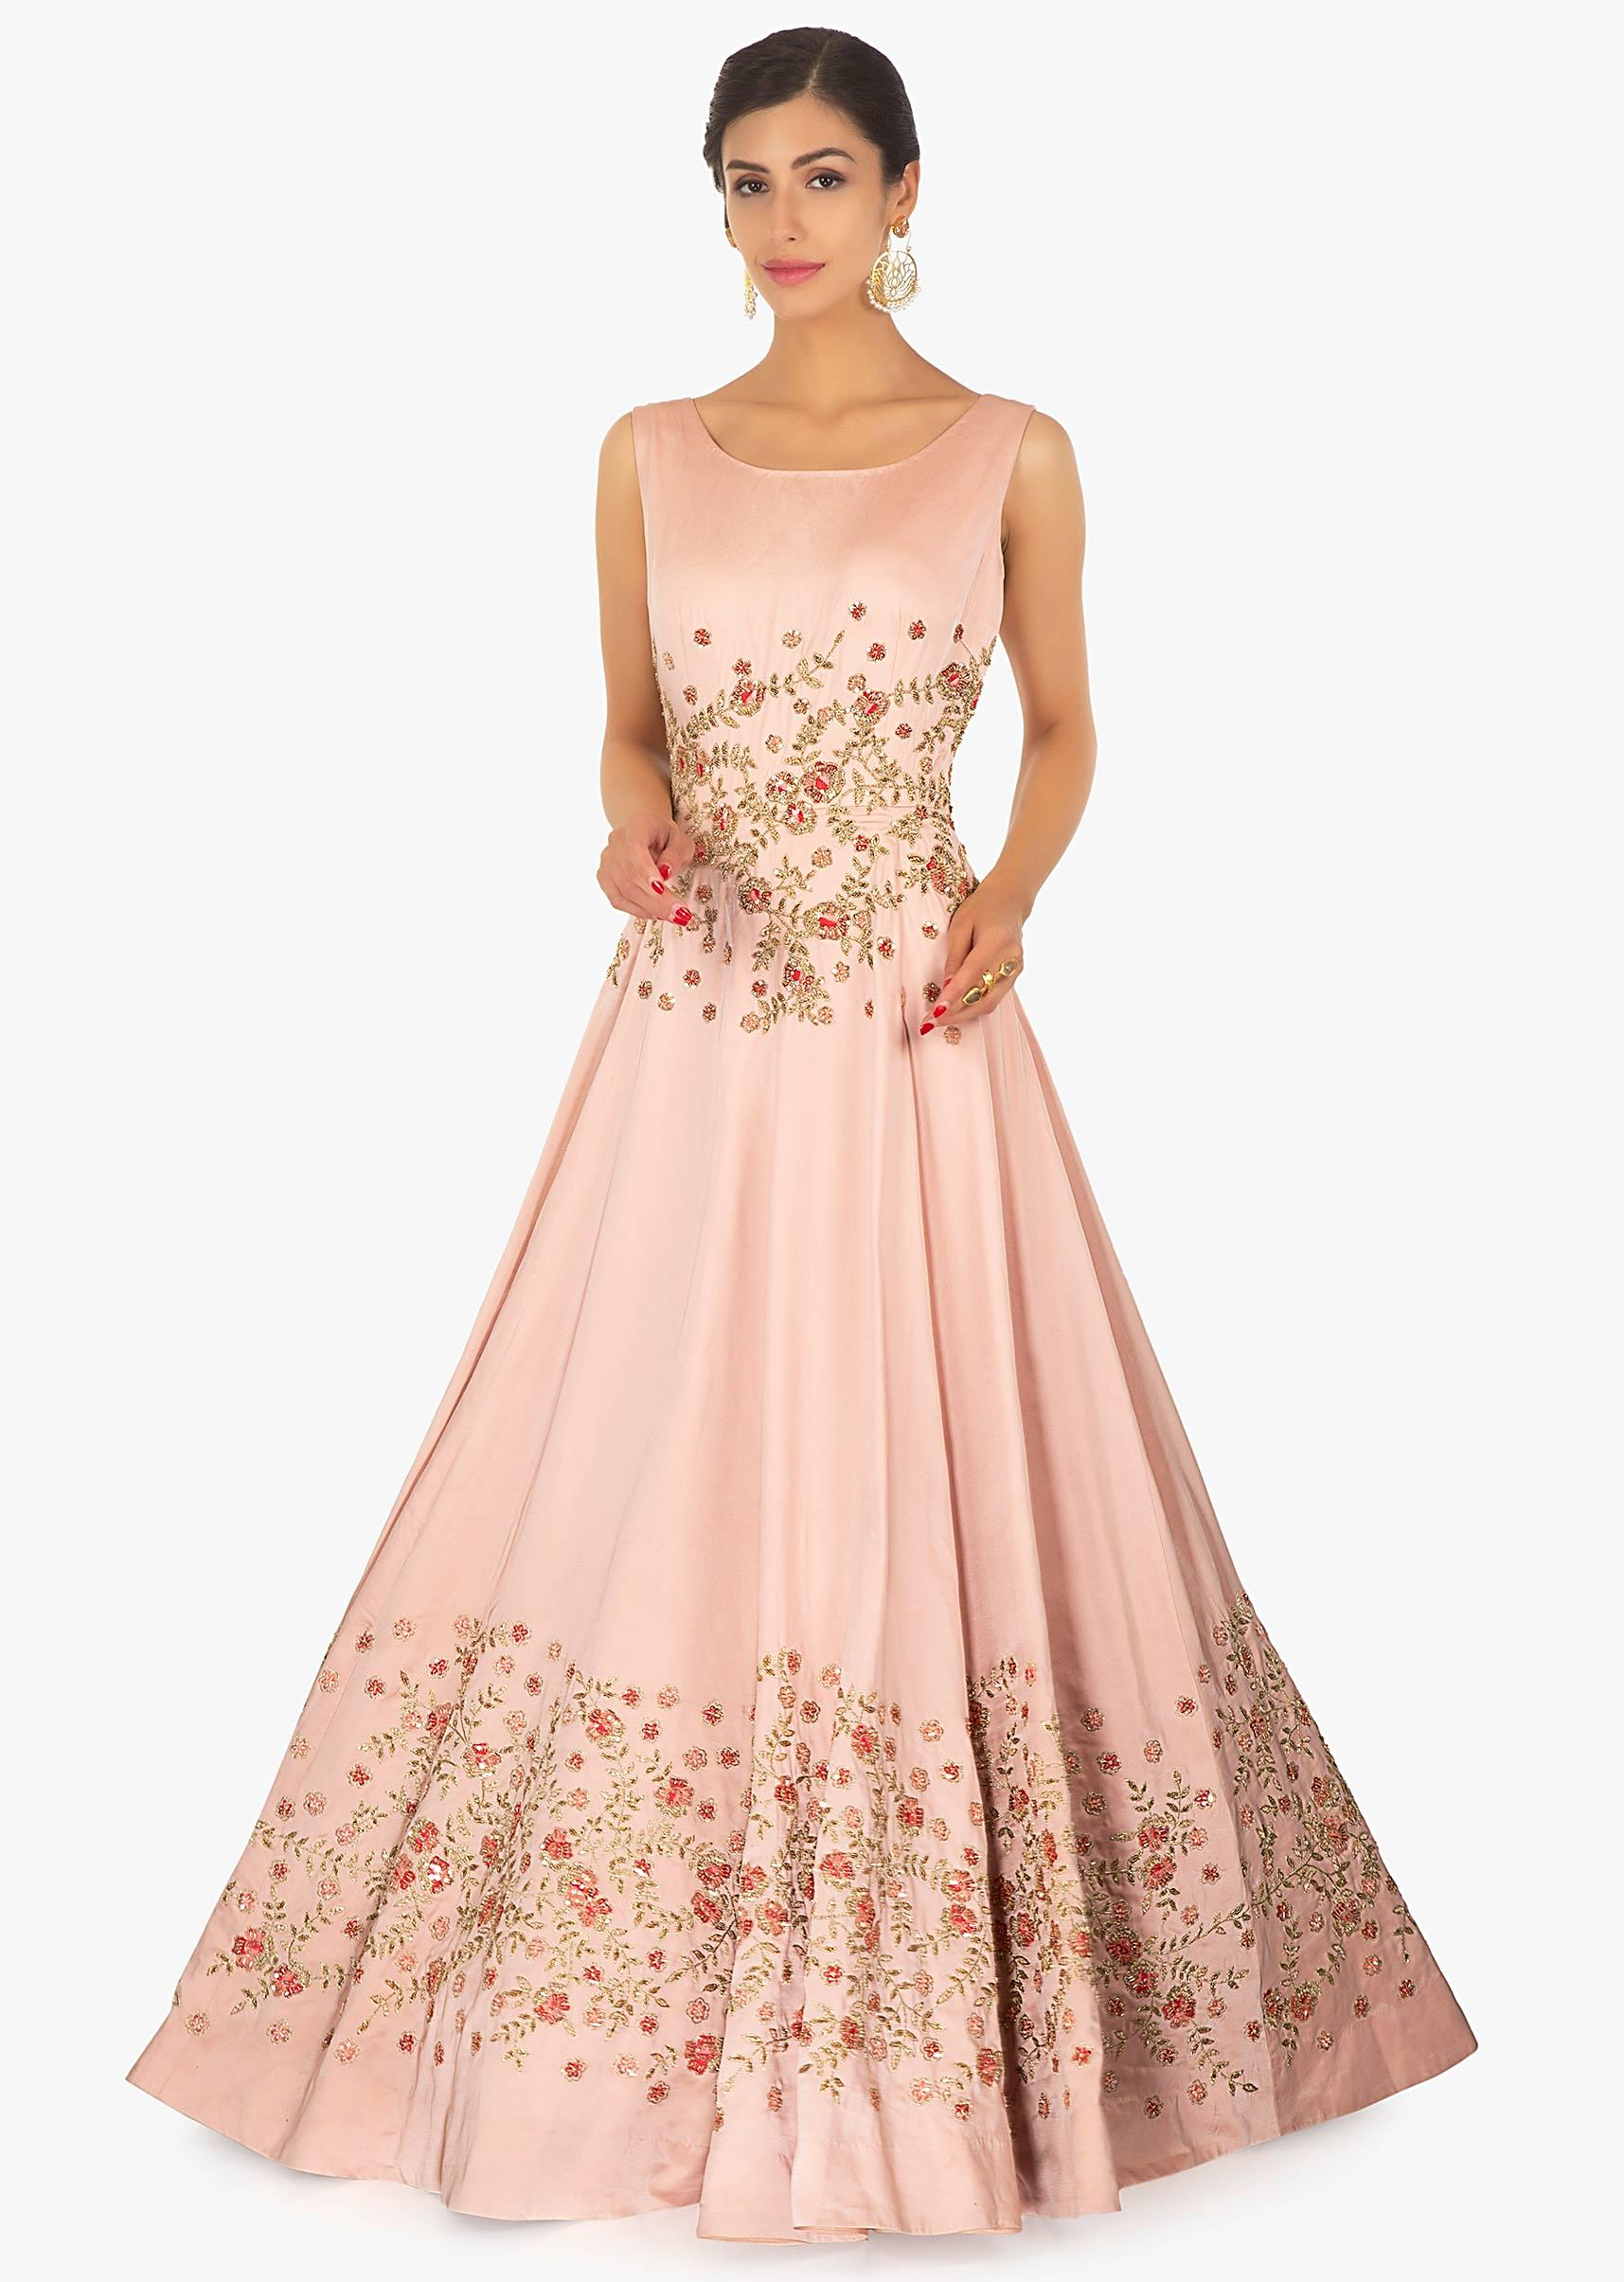 Rose peach floor length gown with embellished bodice and waistline